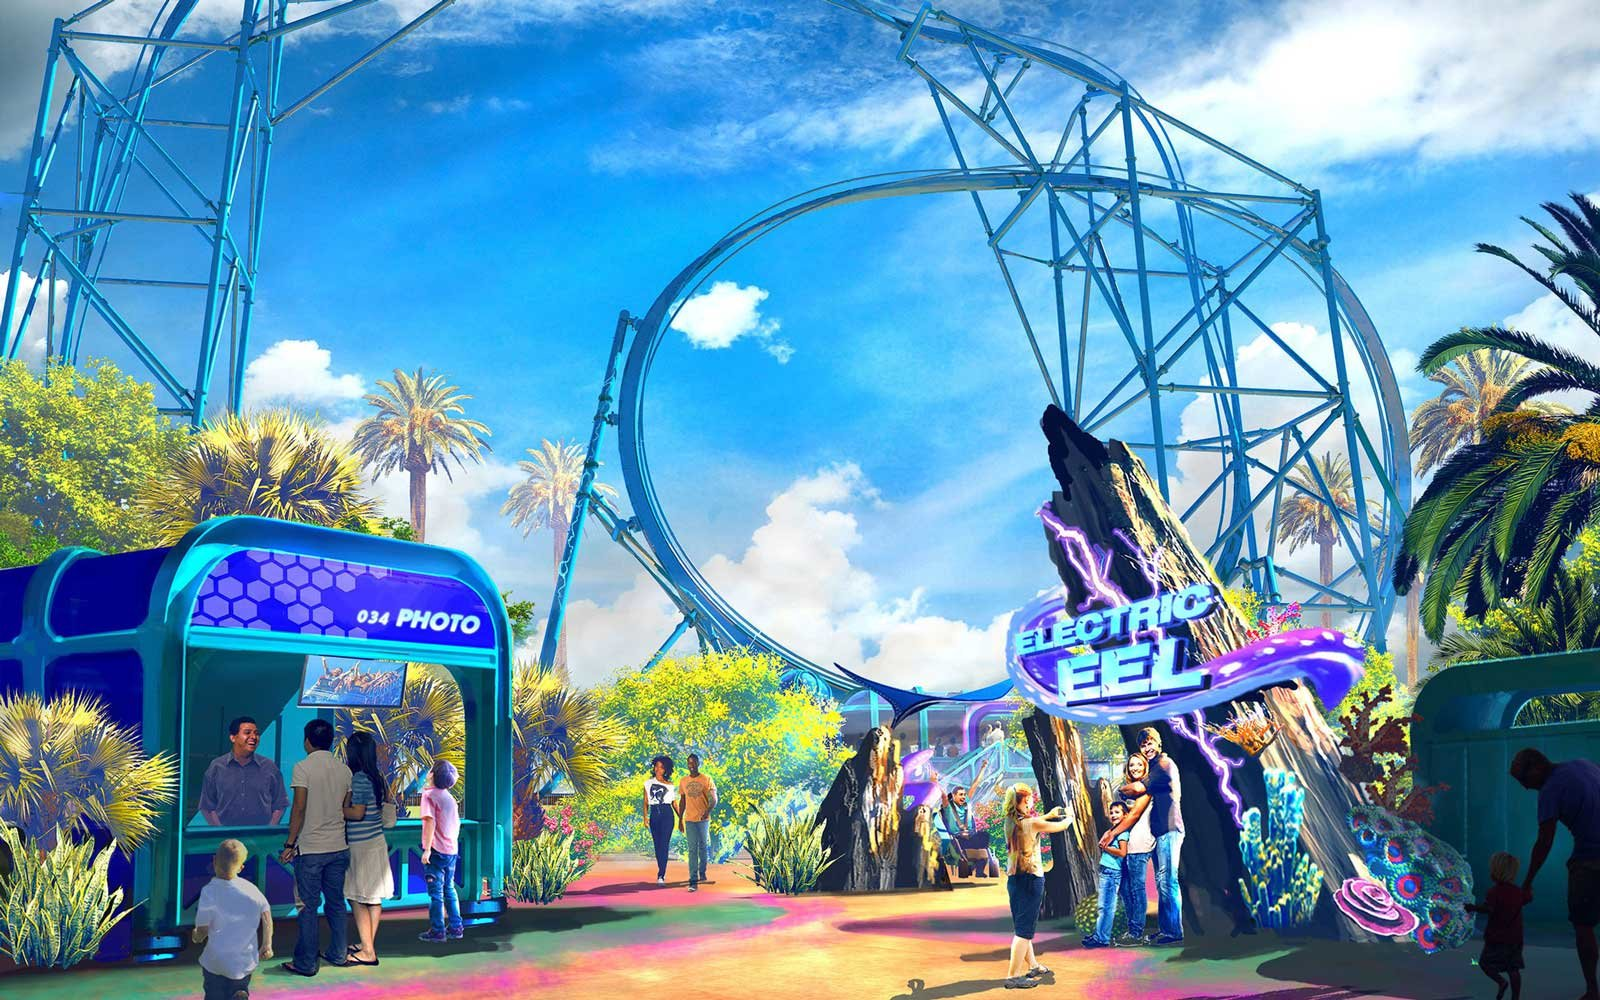 Rendering of the Electric Eel coaster coming to SeaWorld San Diego in 2018